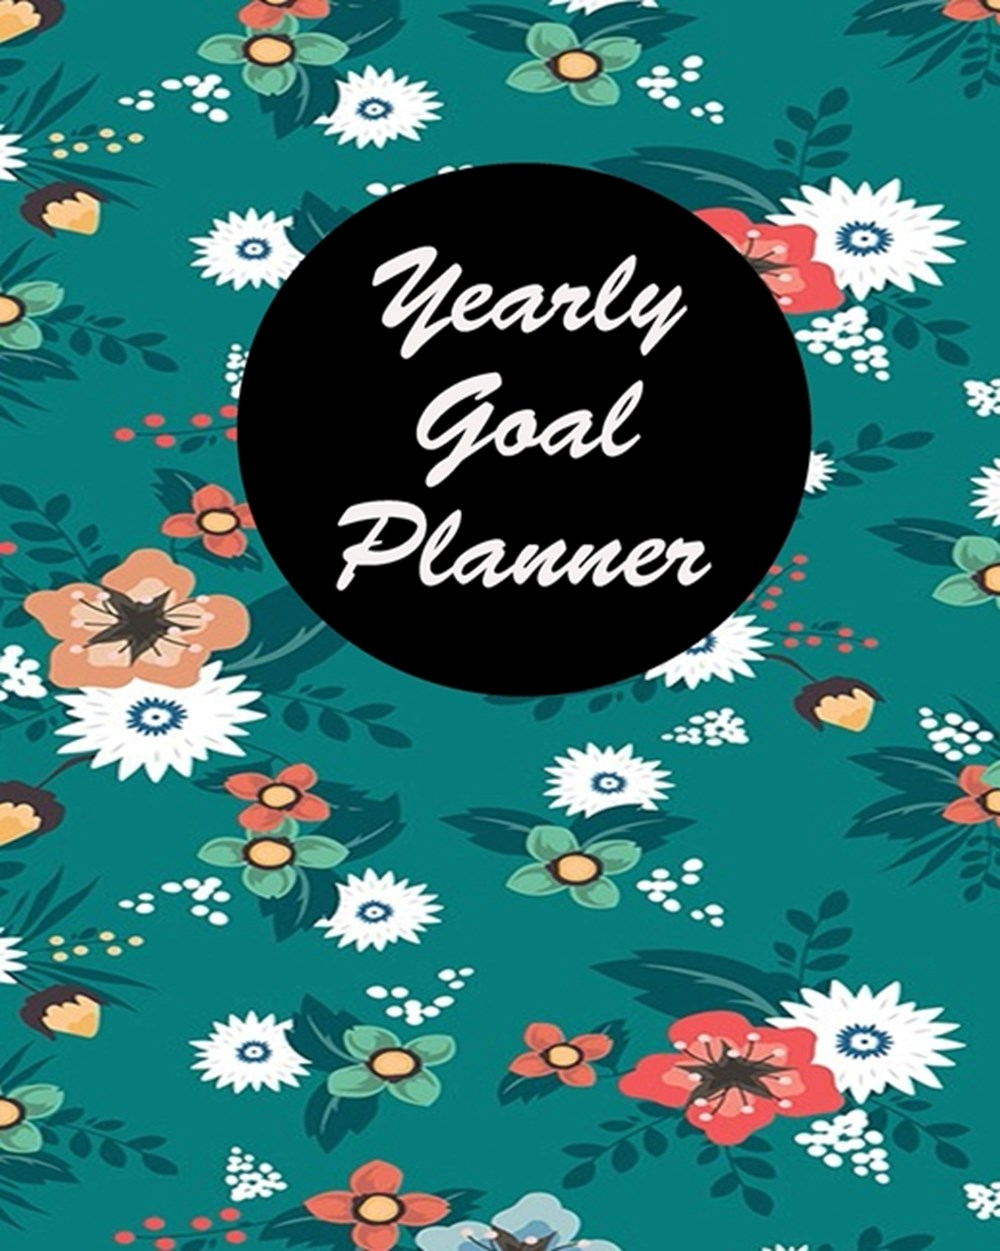 Yearly Goal Planner Yearly Goal Planner Undated 12 Months Goal Planner - 8 x 10 -120 Pages - Boss CE